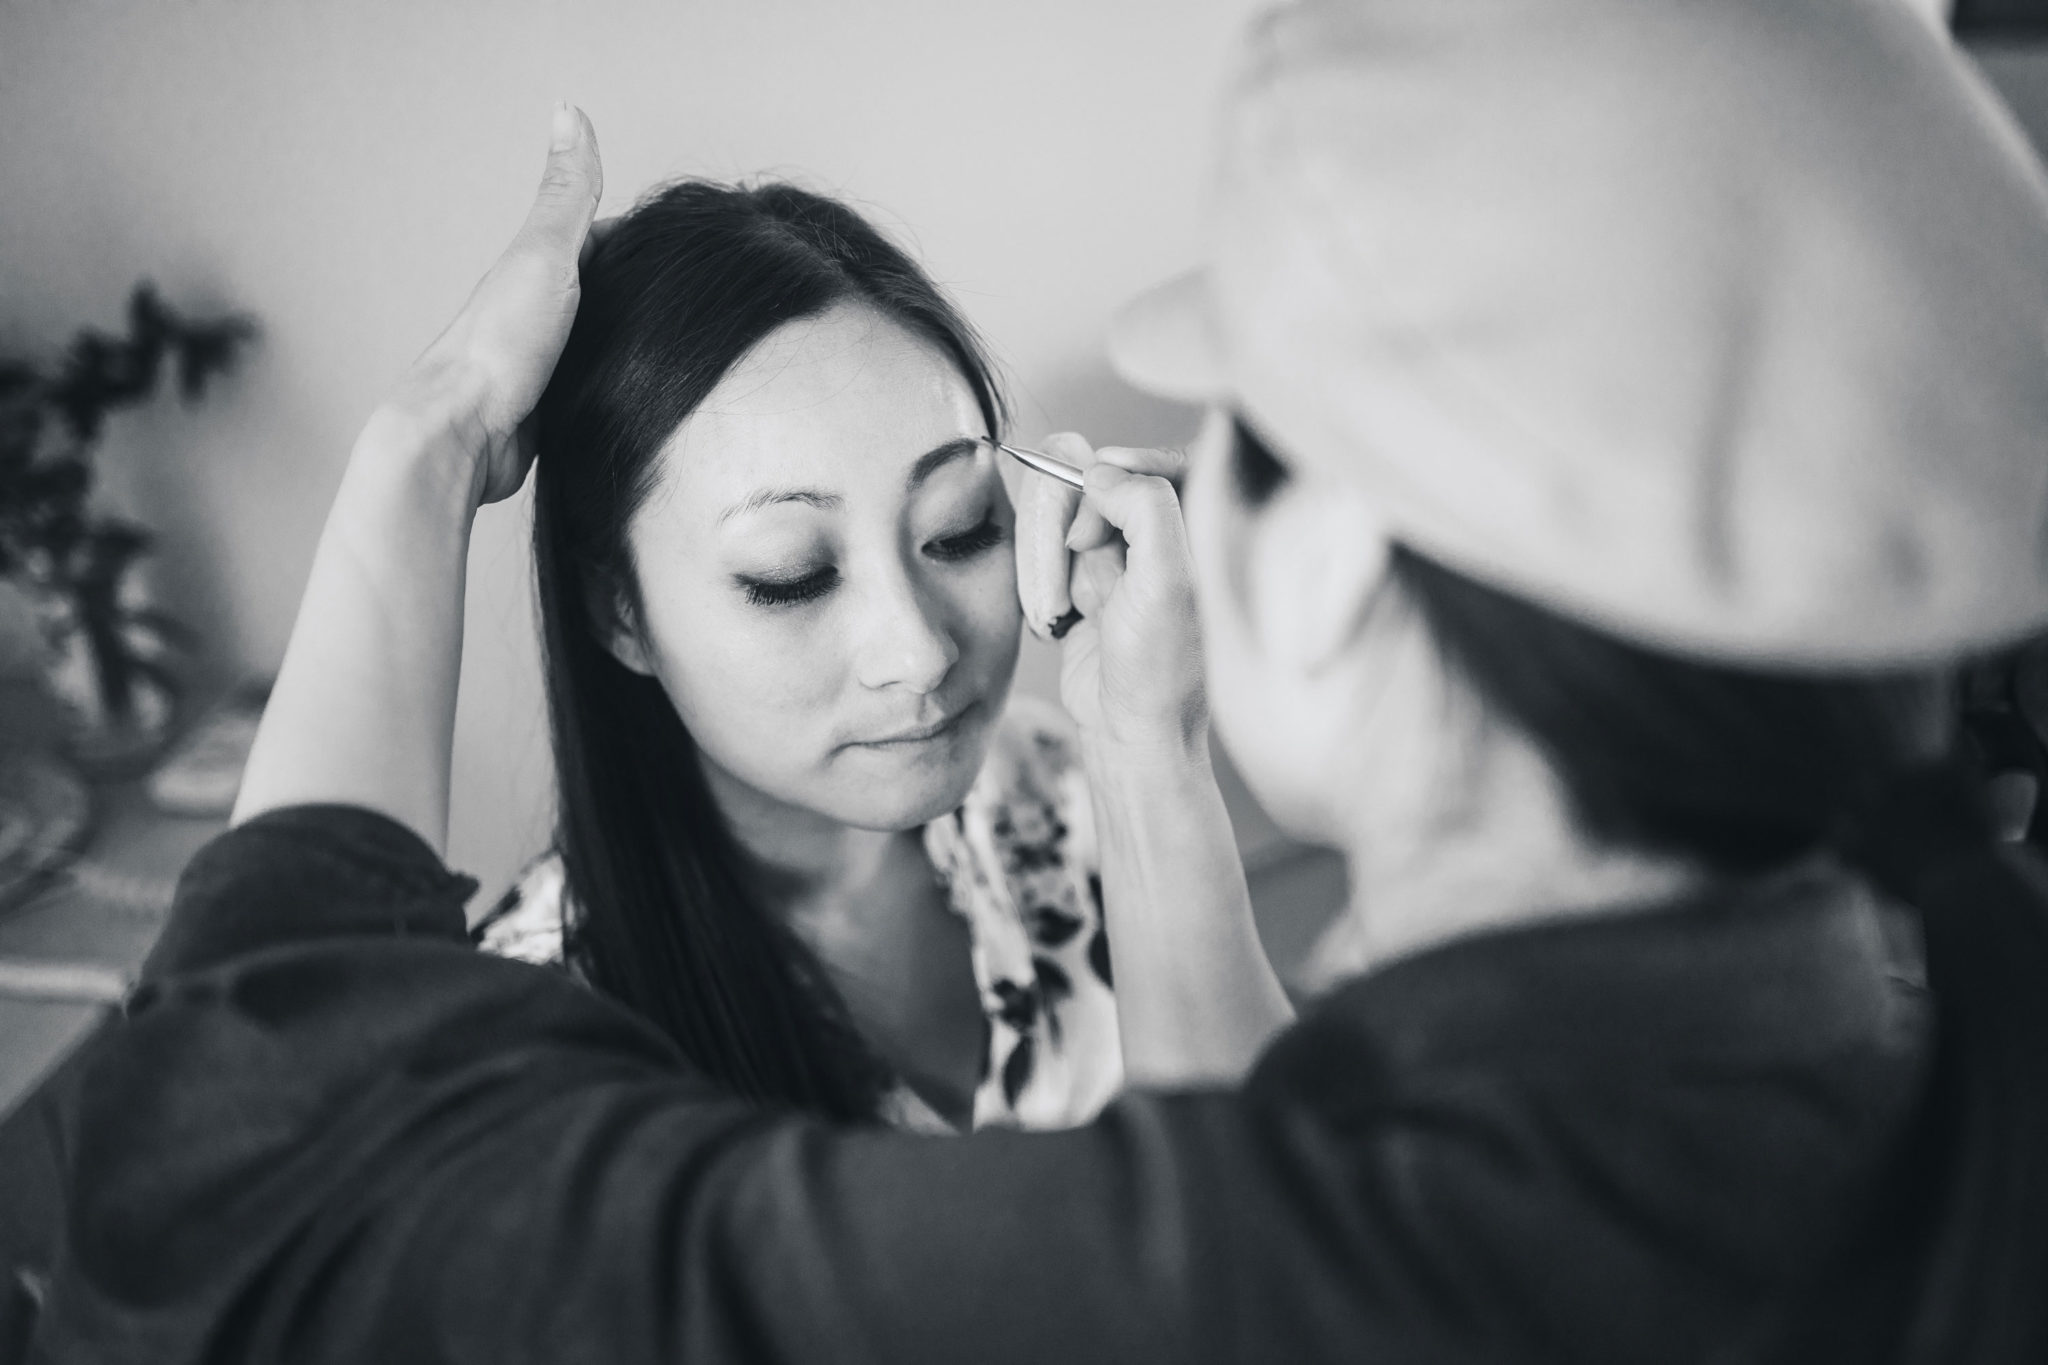 auckland bride getting ready